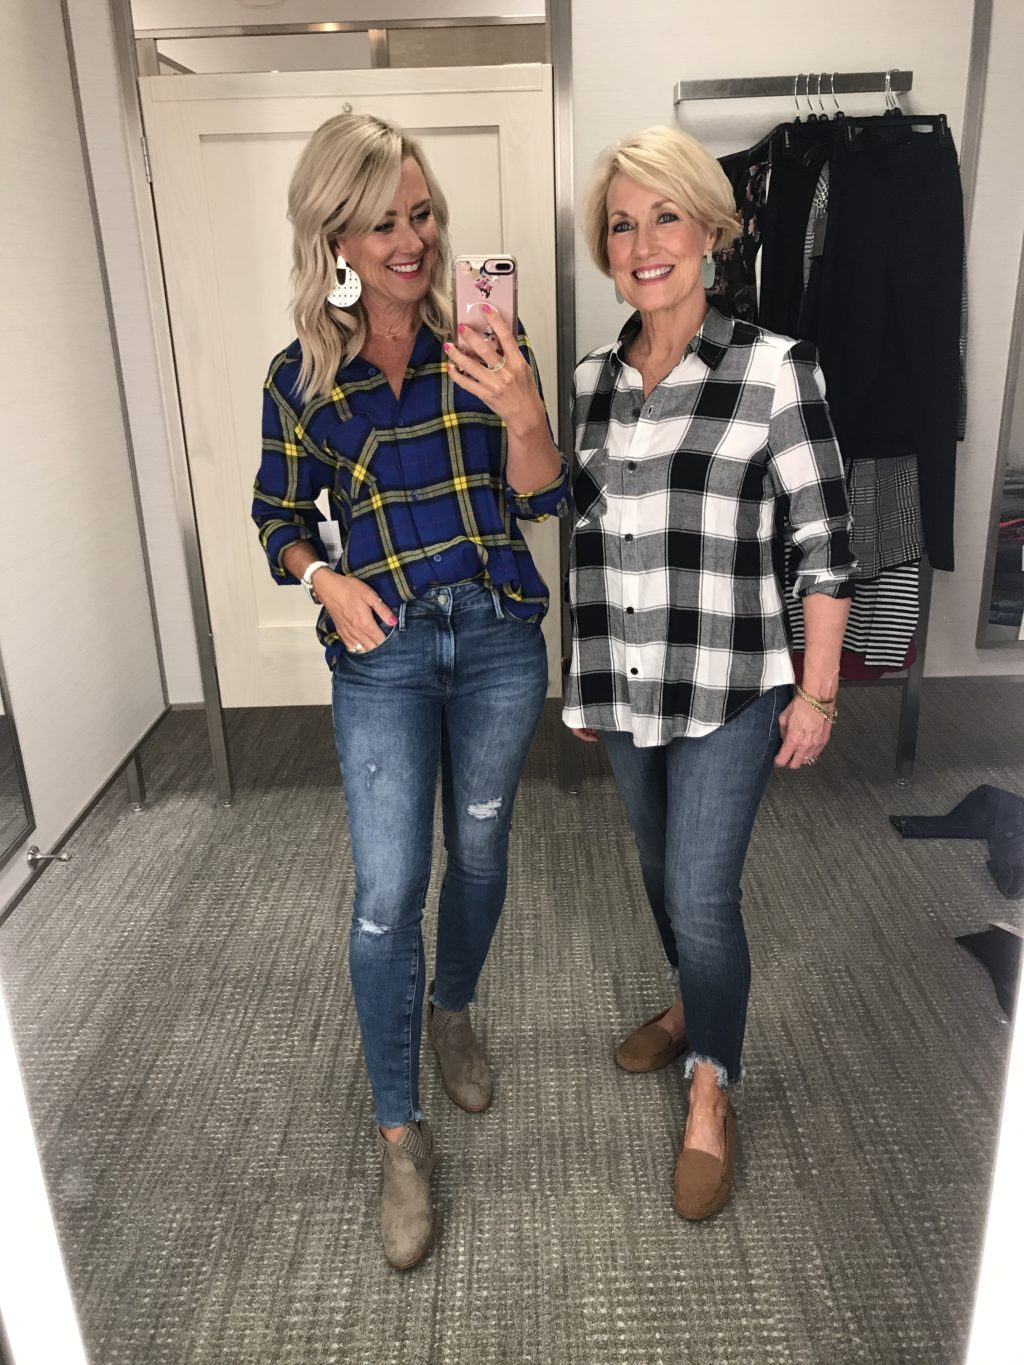 nordstrom anniversary sale outfits BP. plaid shirts blue and white / black